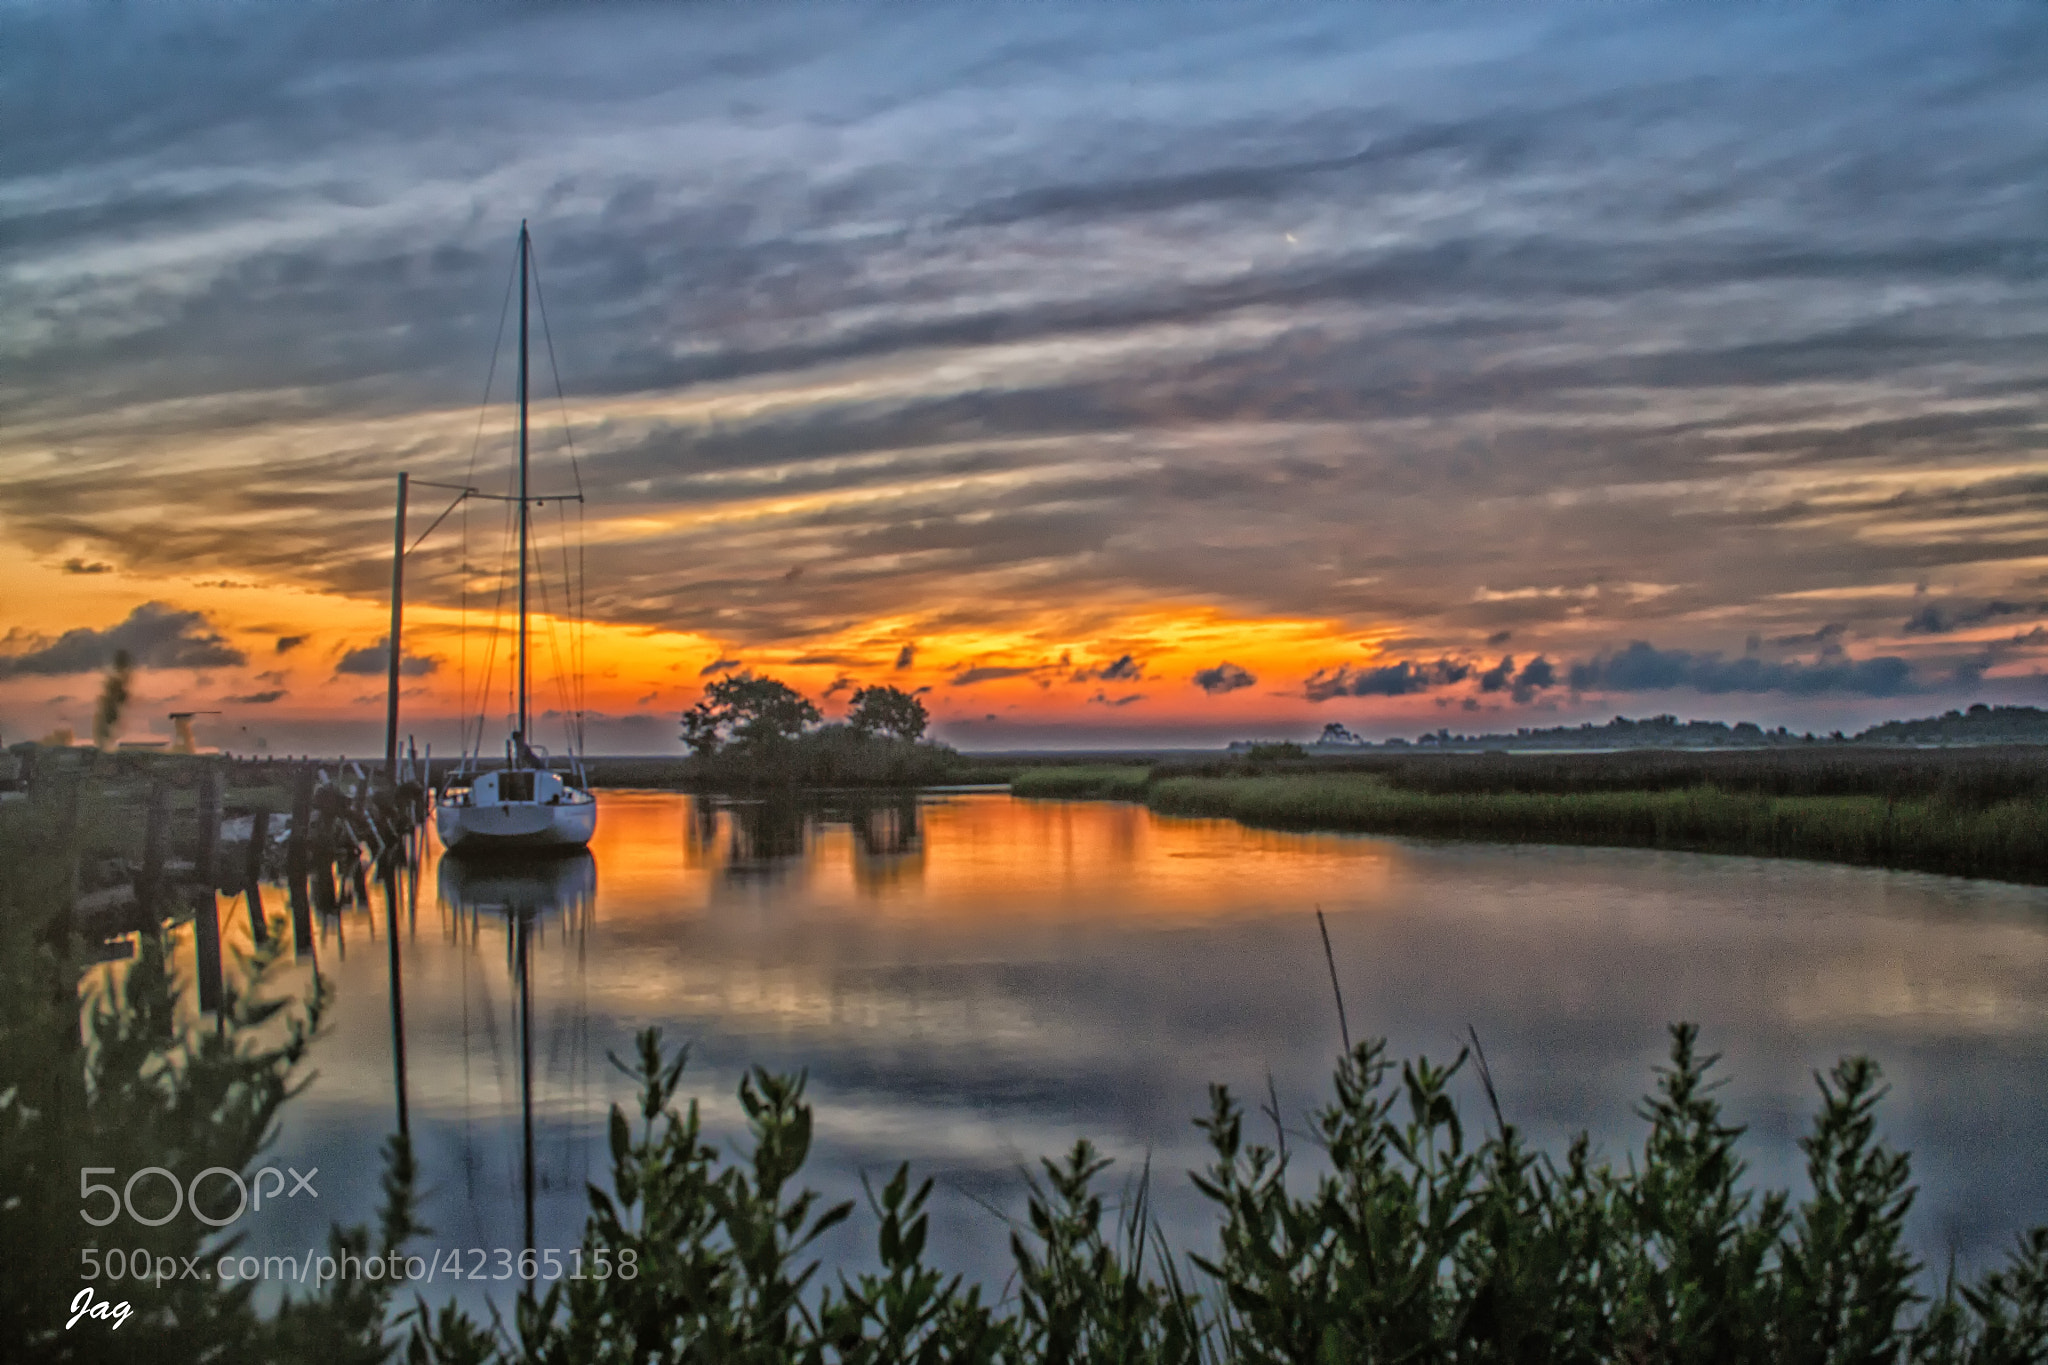 Photograph Waiting to Sail by James Gramm on 500px